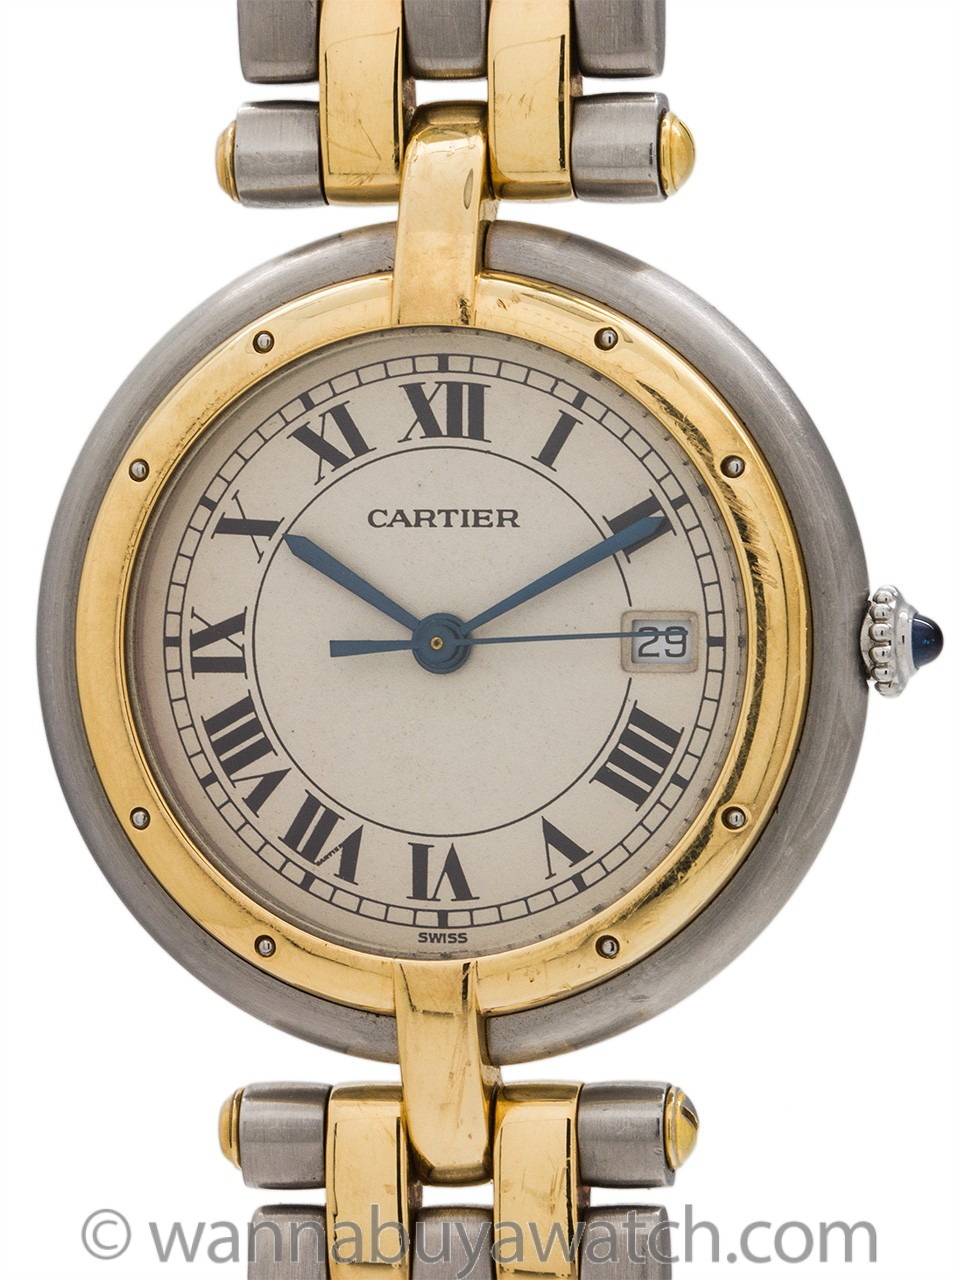 Cartier Man's Vendome Panther SS/18K YG circa 2000's